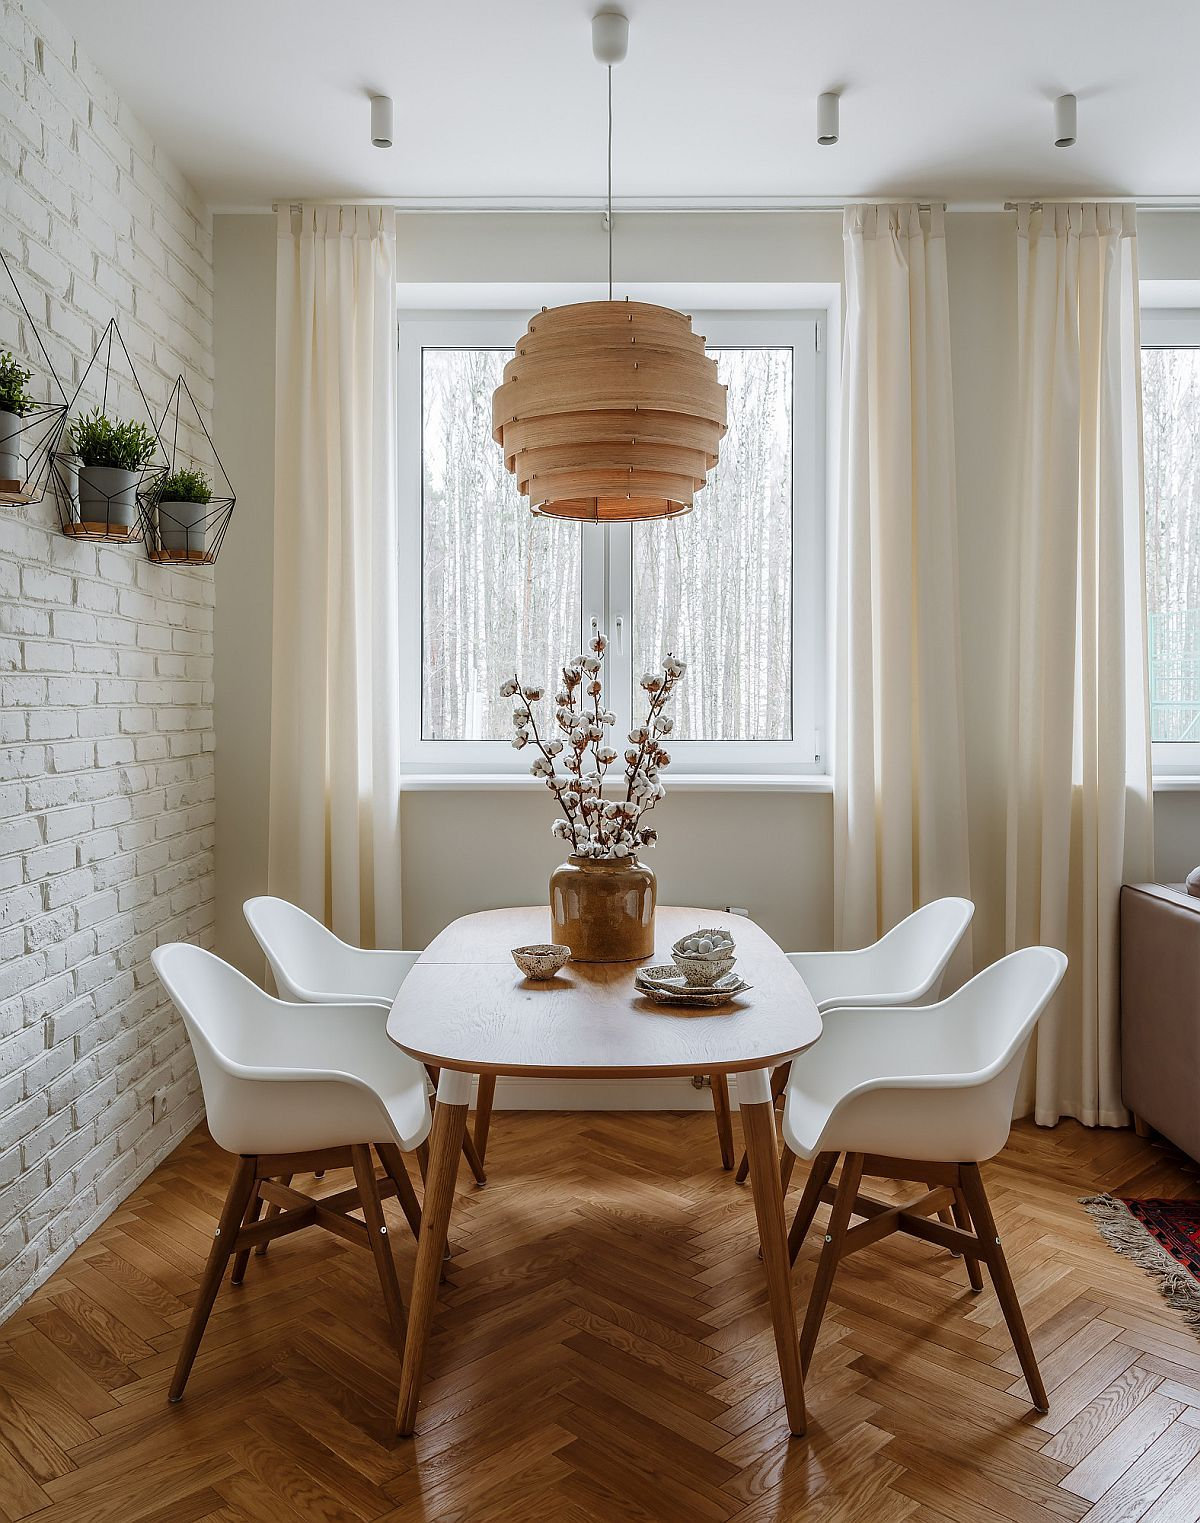 Textured Modernity 20 Dining Rooms With White Brick Walls Brick Wall Decor Brick Interior Wall Farmhouse Style Dining Room